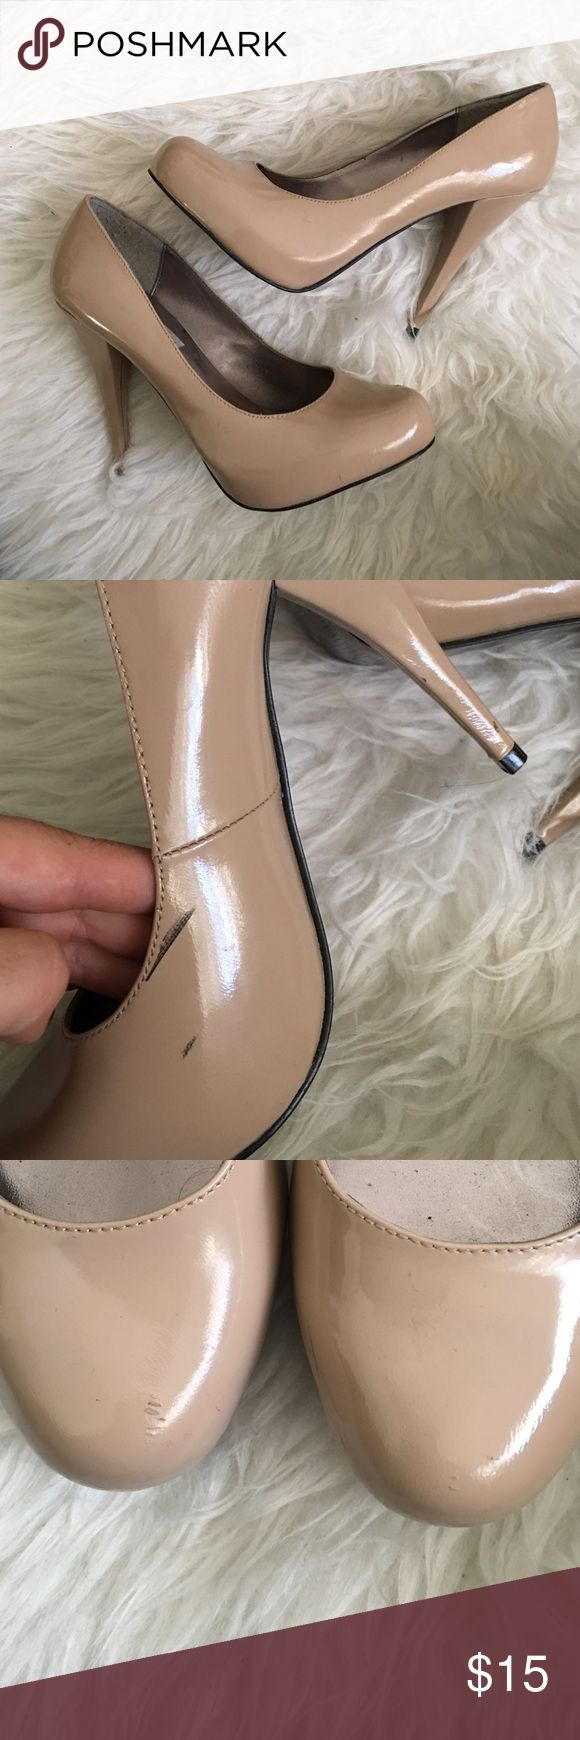 Patent Leather Nude Pumps Worn 2x. Light scuffing. Steve Madden Trinitie pumps Ina nude tan patent leather. Make your legs look super long and are great to wear with a variety of going out dresses and more. Steve Madden Shoes Heels